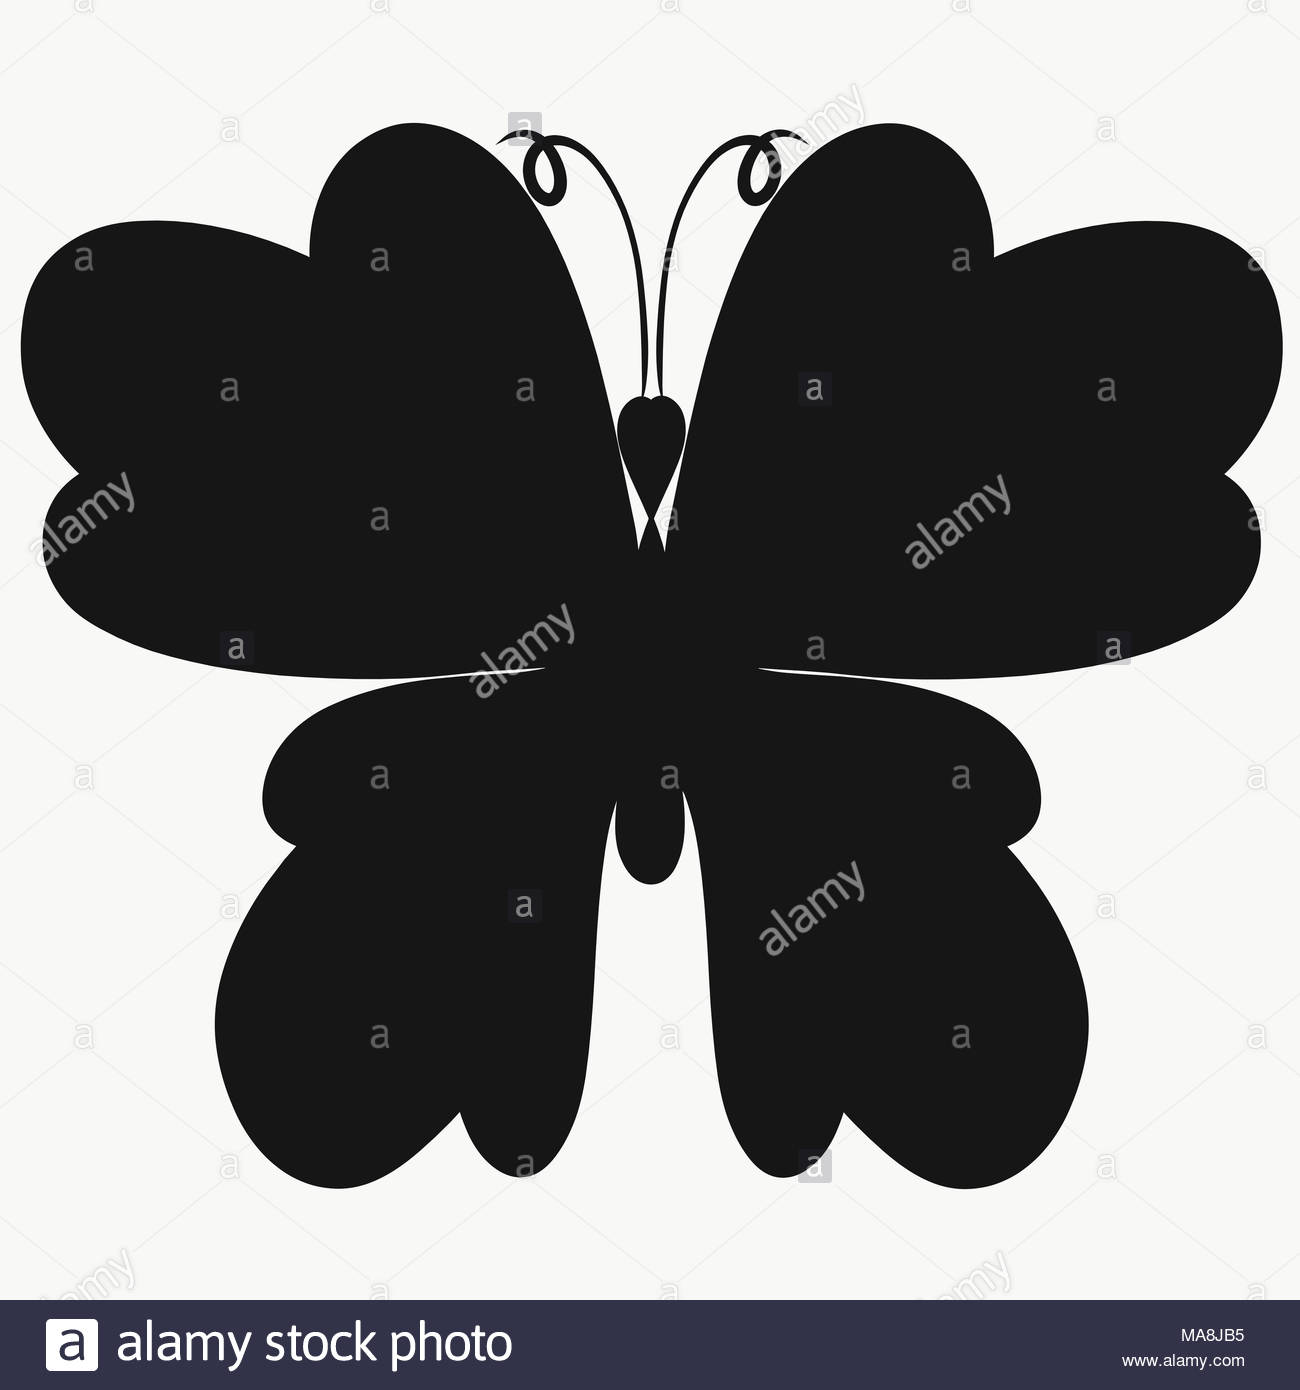 Butterfly as symbol for resurrection stock photos butterfly as silhouette of a beautiful butterfly stock image buycottarizona Images